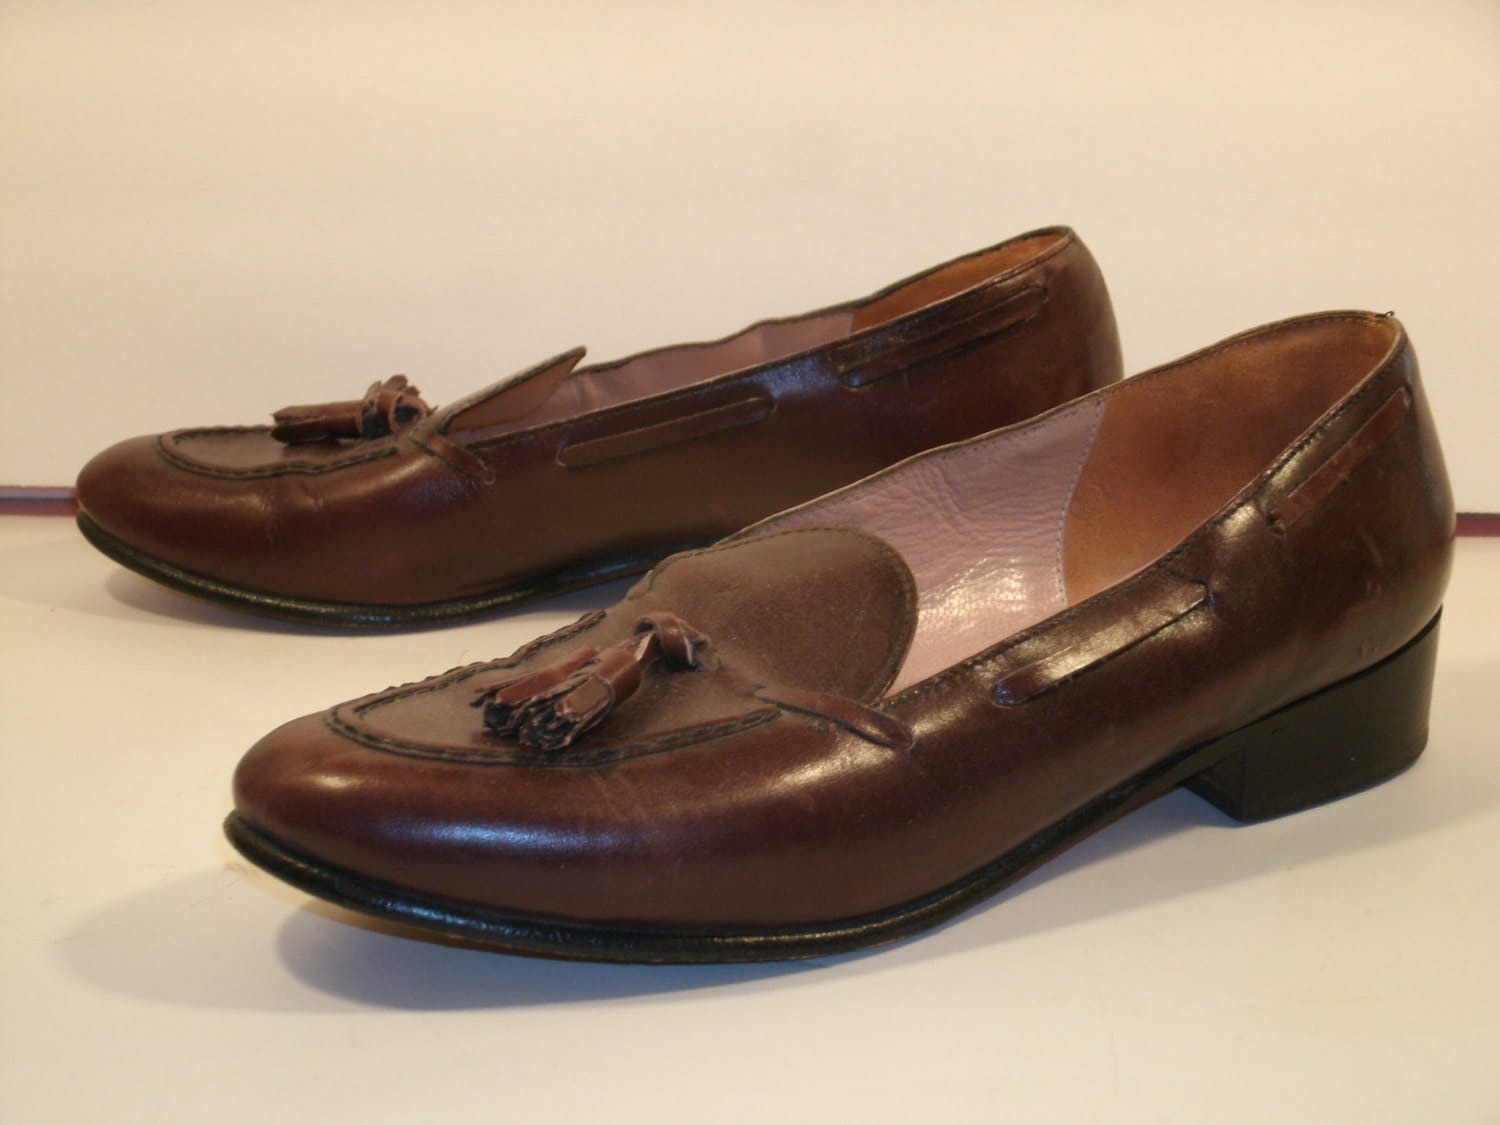 s belgian shoes tassel loafers slip on brown leather